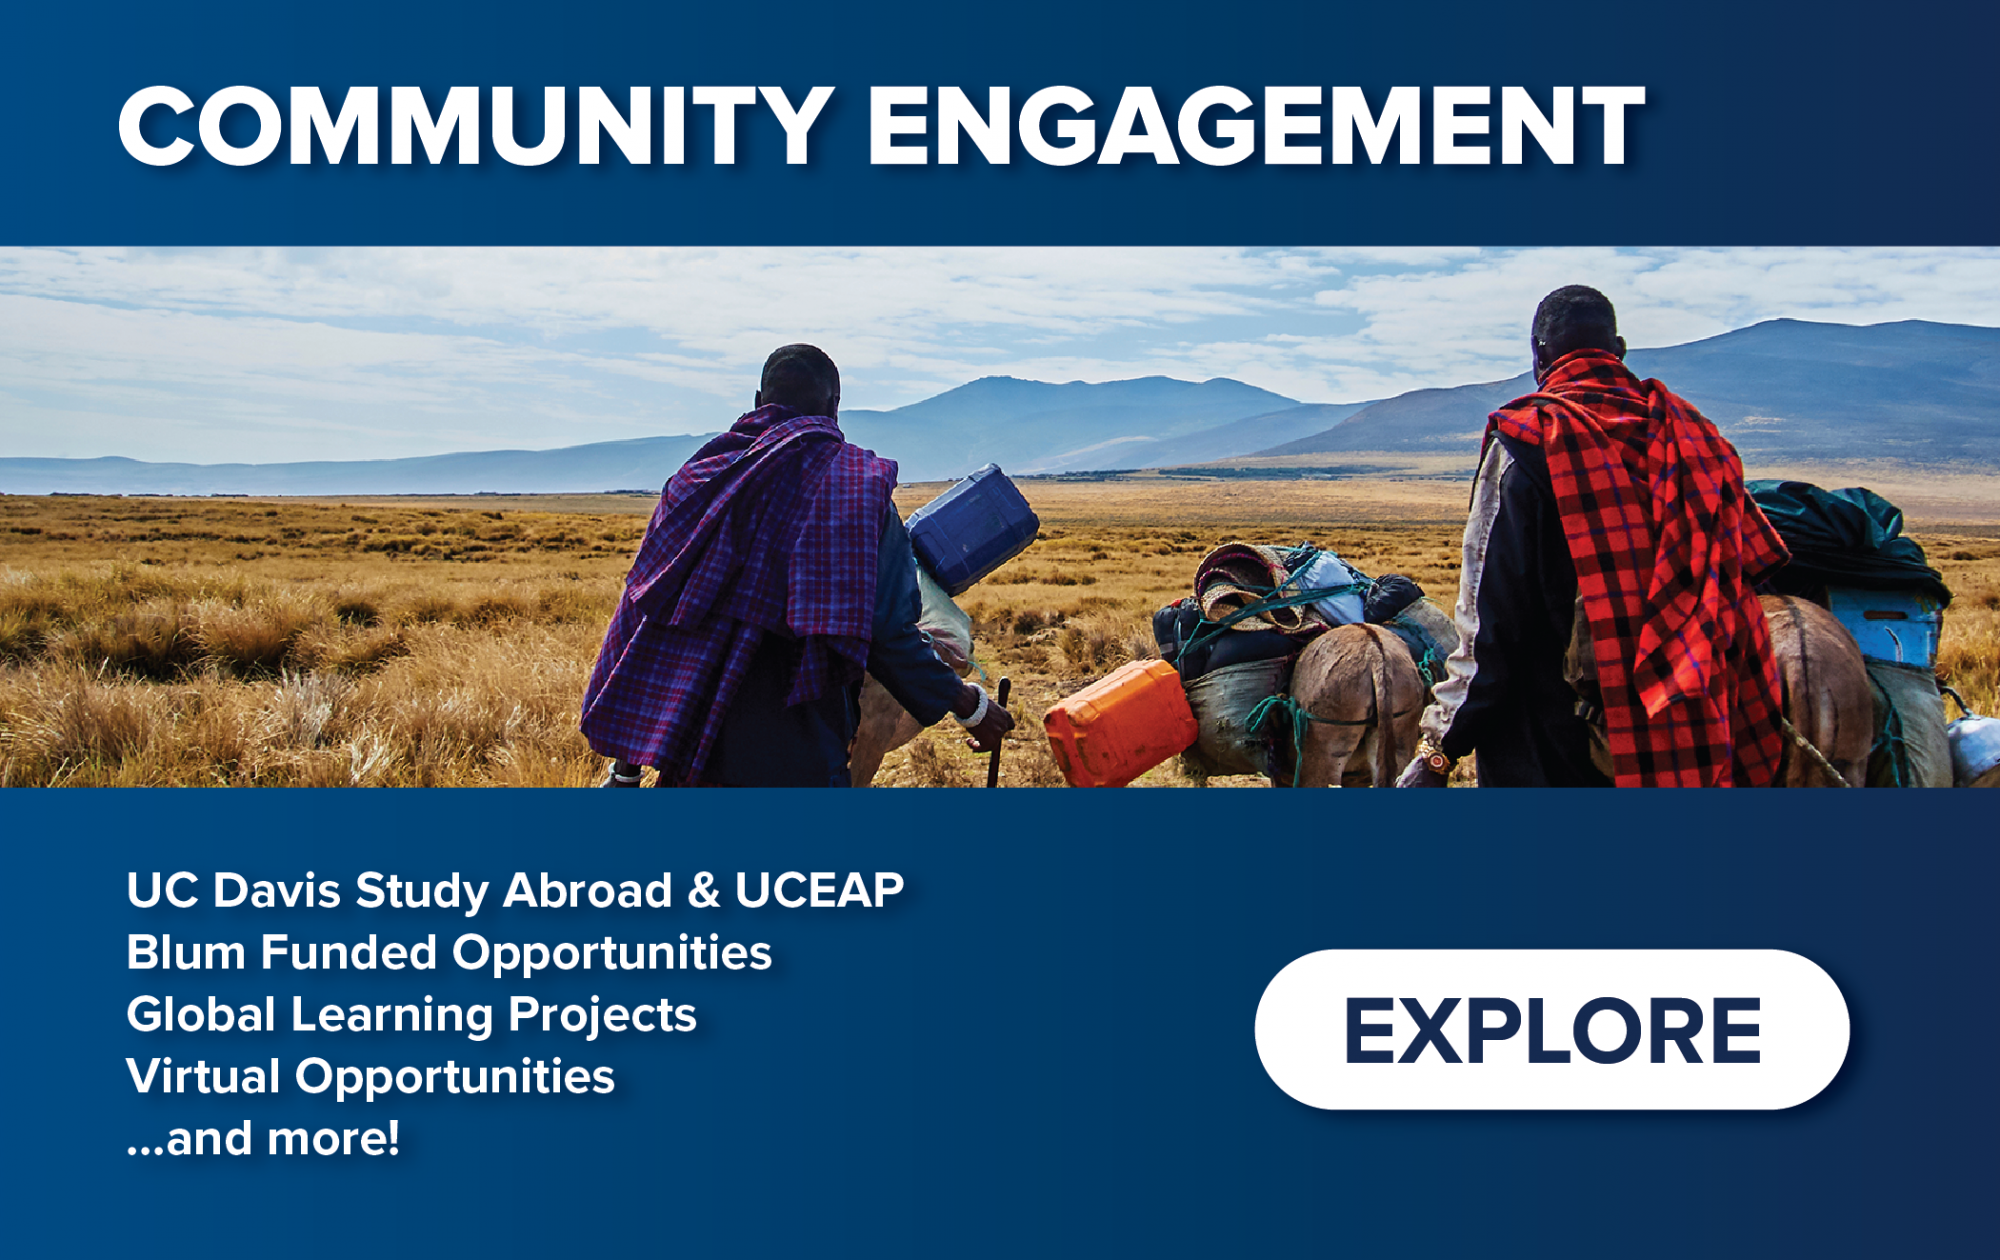 Homepage Teaser Image - Community Engagement Portal - UC Davis Study Abroad & UCEAP; Blum Funded Opportunities; Global Learning Projects; Virtual Opportunities; and more